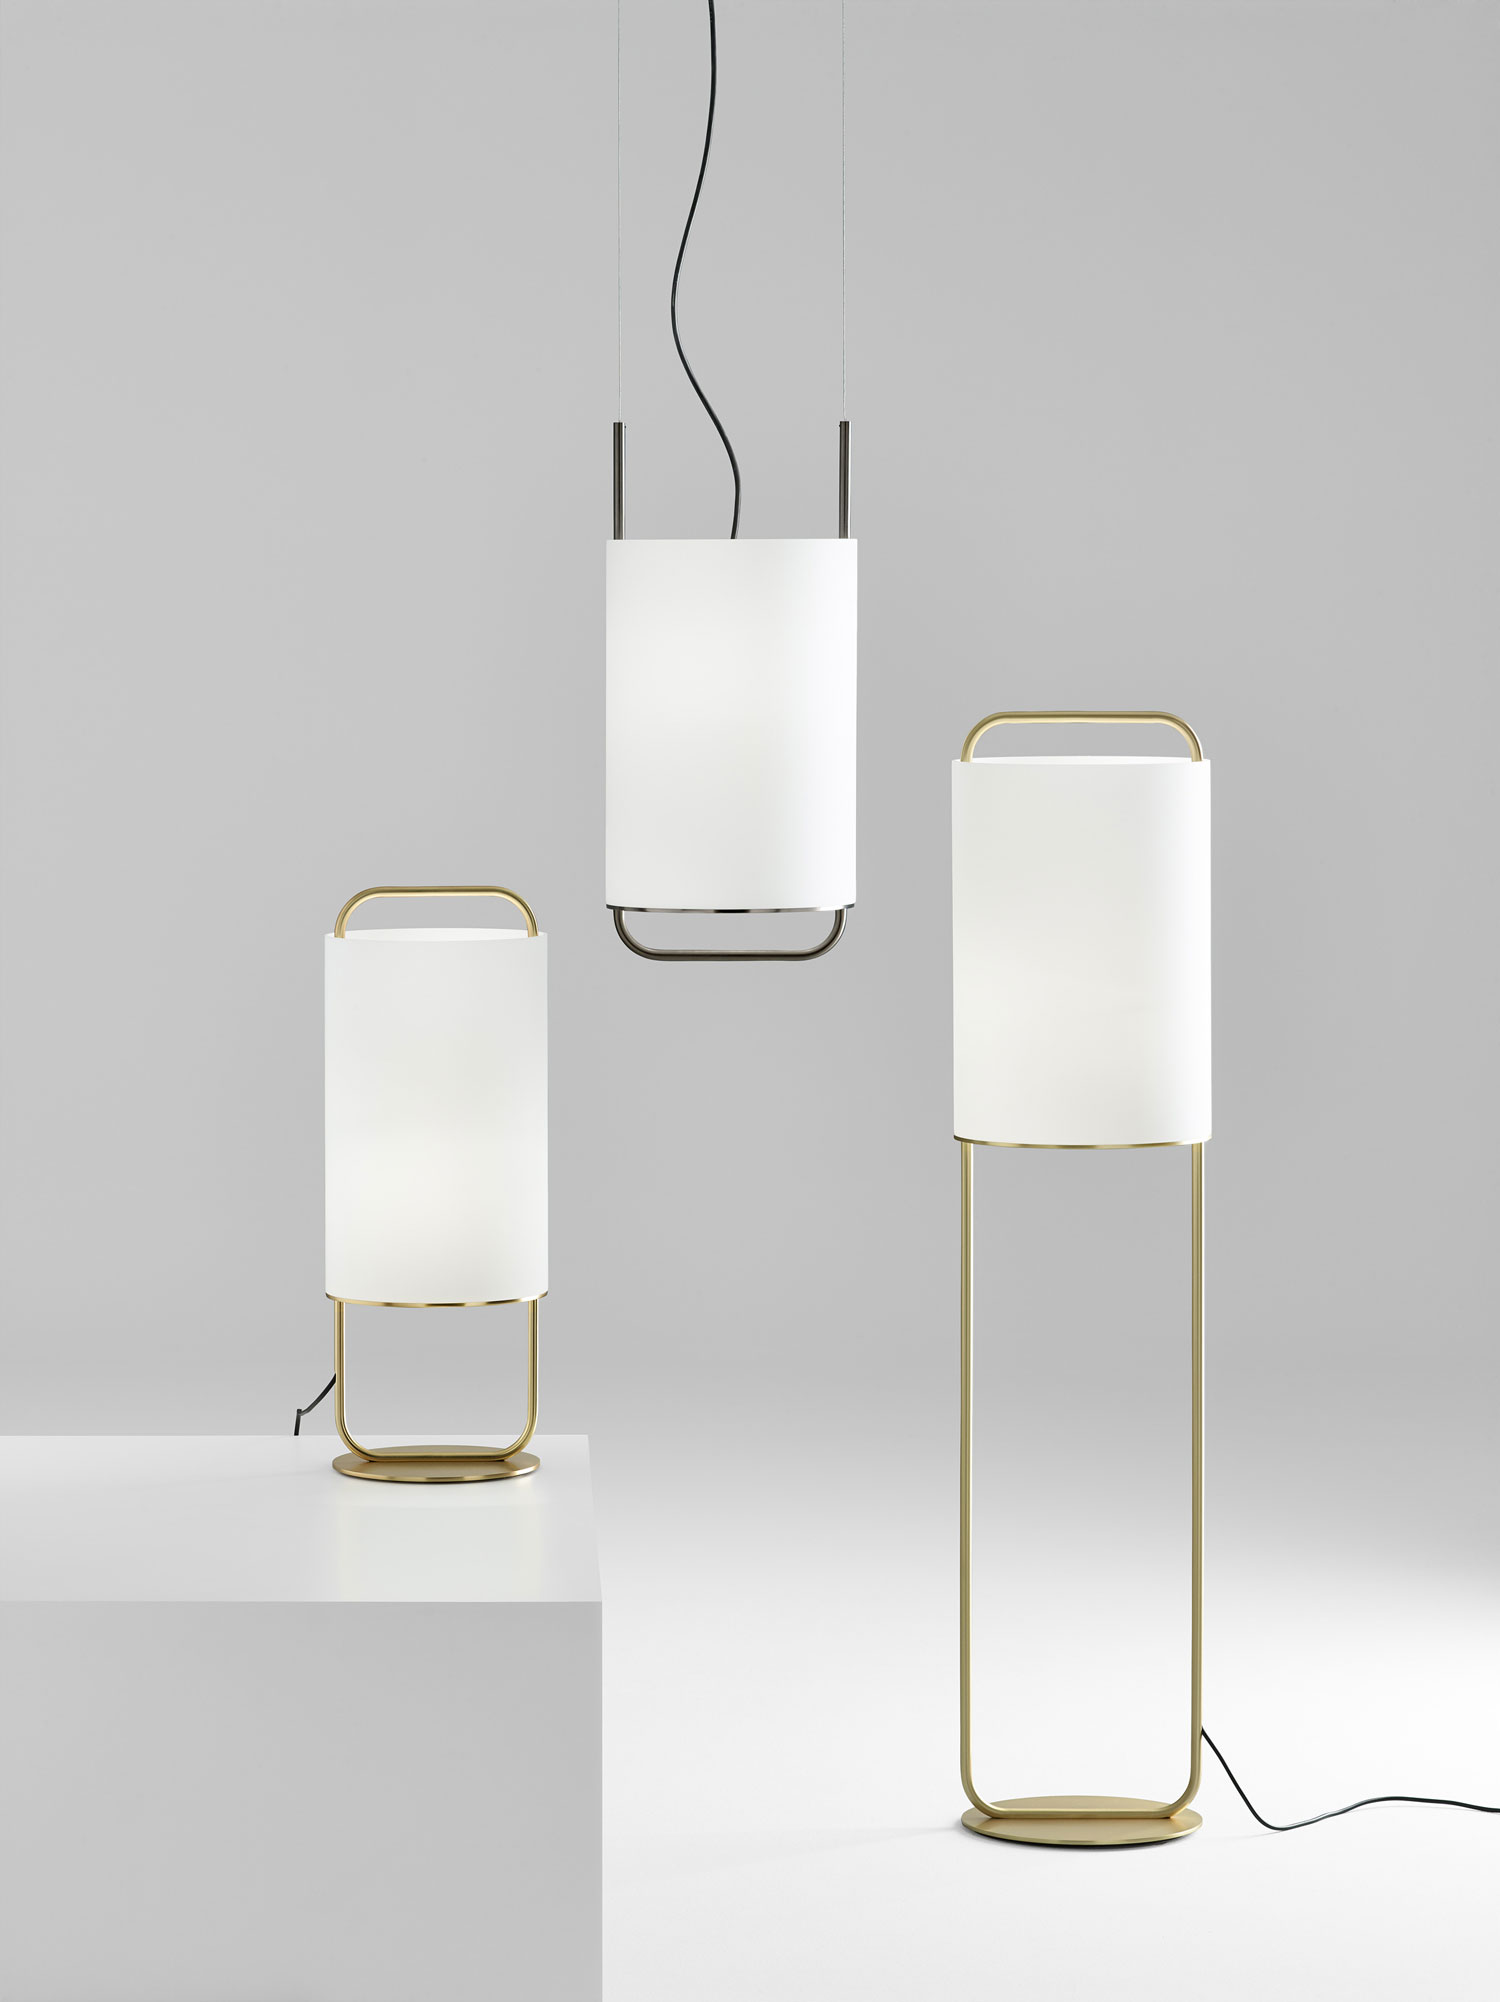 Parachilna Lighting at KE-ZU by Jordi Veciana | Yellowtrace